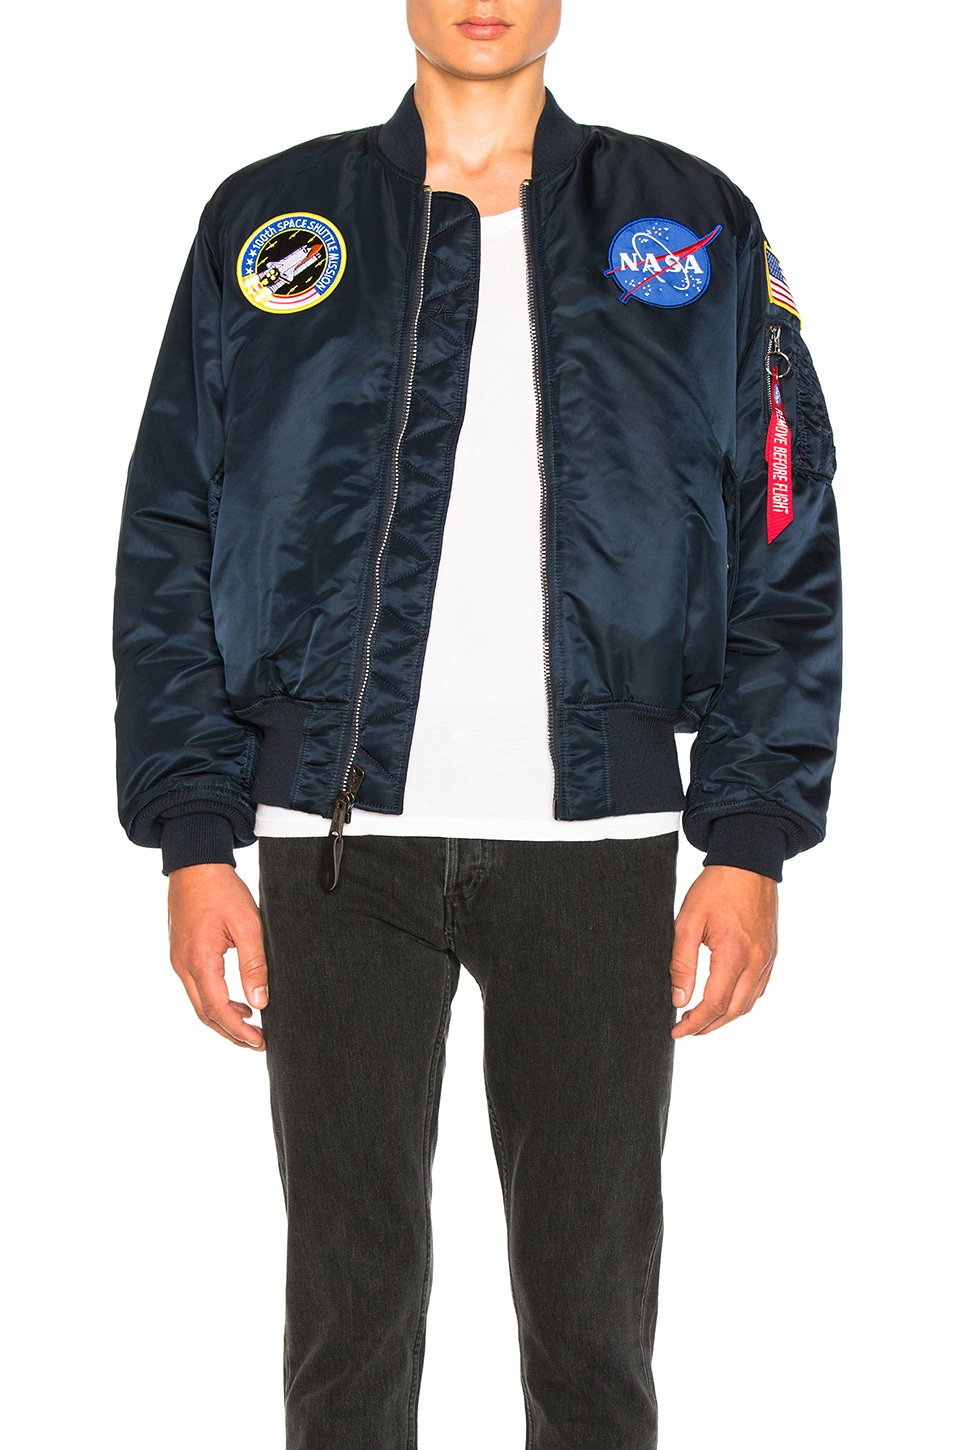 ALPHA INDUSTRIES CAZADORA NASA MA 1